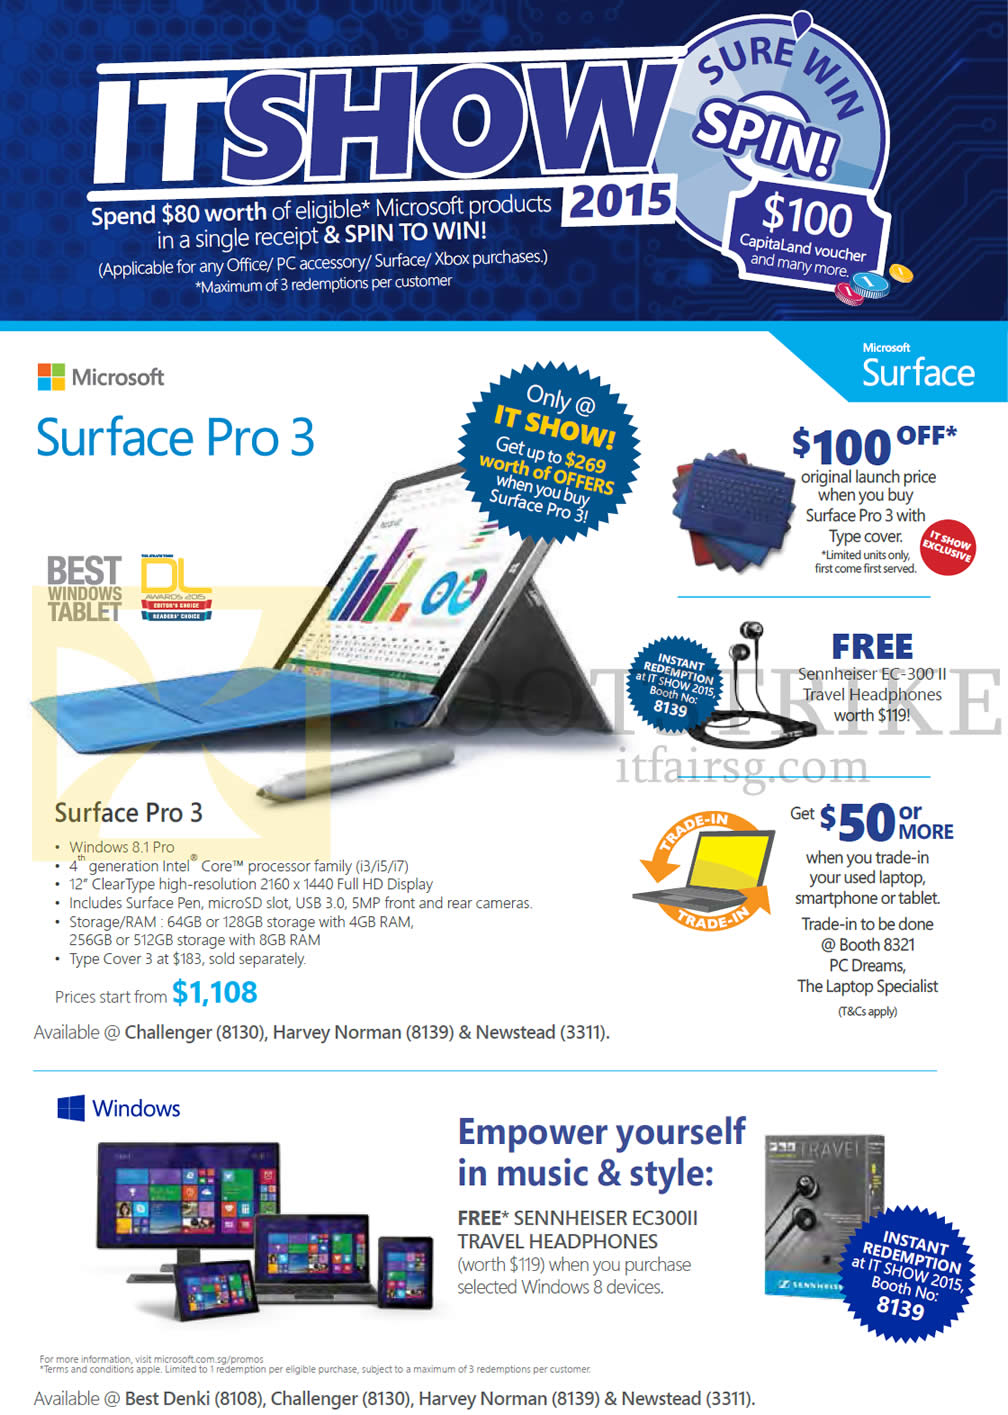 microsoft tablet surface pro 3 it show 2015 price list brochure it show 2015 price list image brochure of microsoft tablet surface pro 3